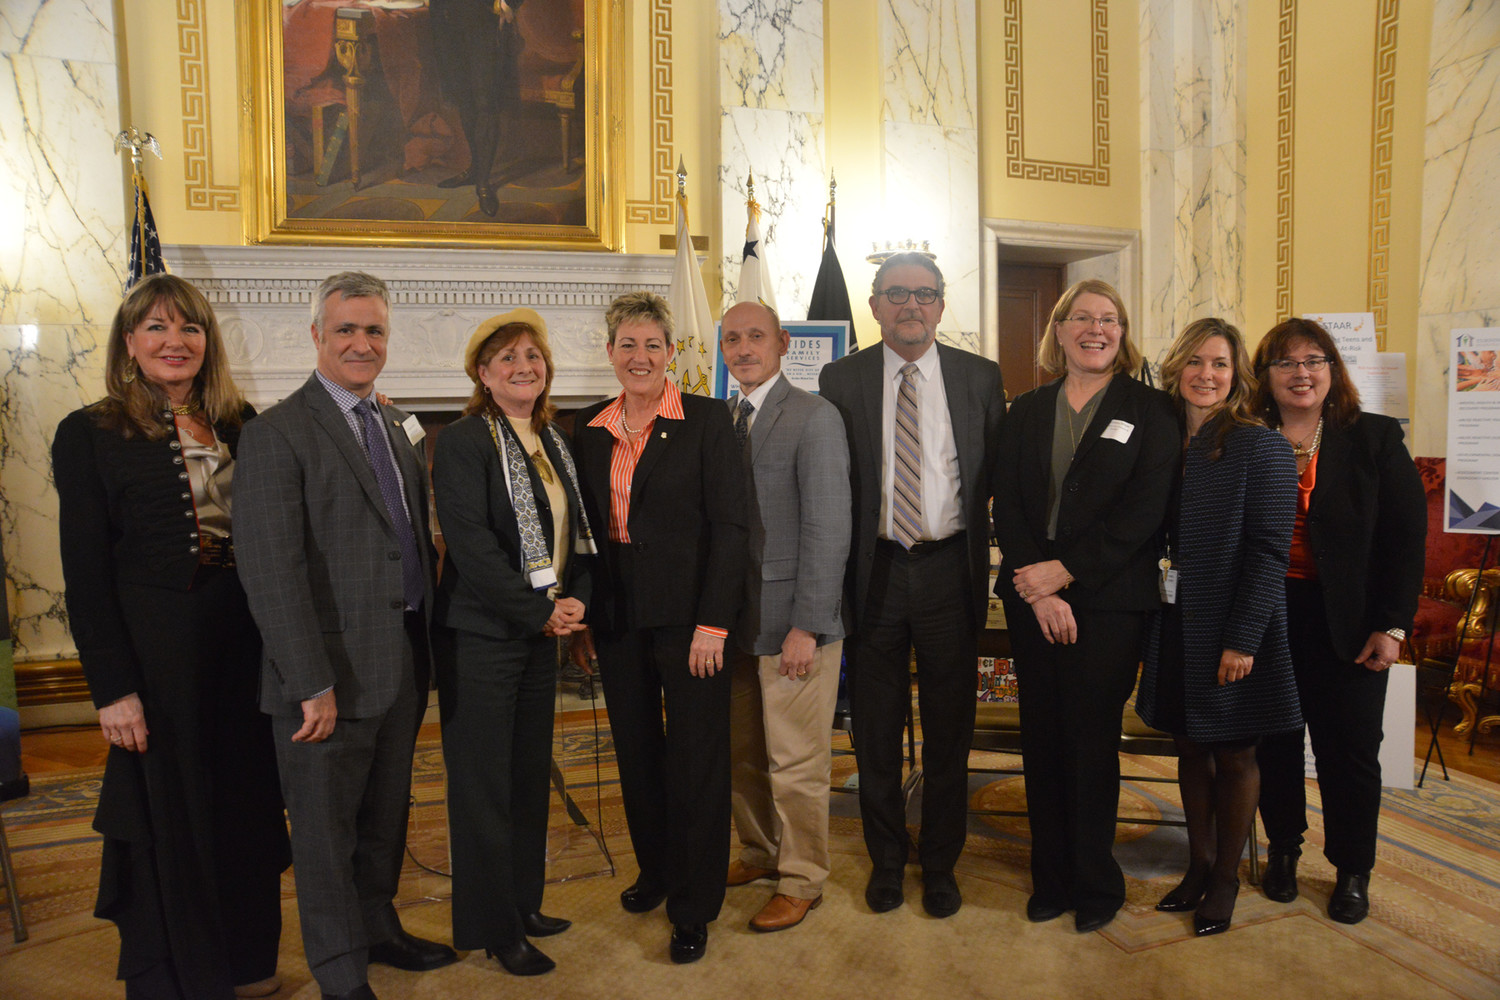 From left, Rep. Carol Hagan McEntee, Rep. Jason Knight, Rep. Deborah Ruggiero, Sen. Cynthia A. Coyne, Sen. Louis P. DiPalma, Coalition for Children and Families Board Chairman Benedict F. Lessing Jr., Coalition Executive Director Tanja Kubas-Meyer and Lisa Tomasso and Darlene Allen, Coalition Legislative Committee chairwomen.